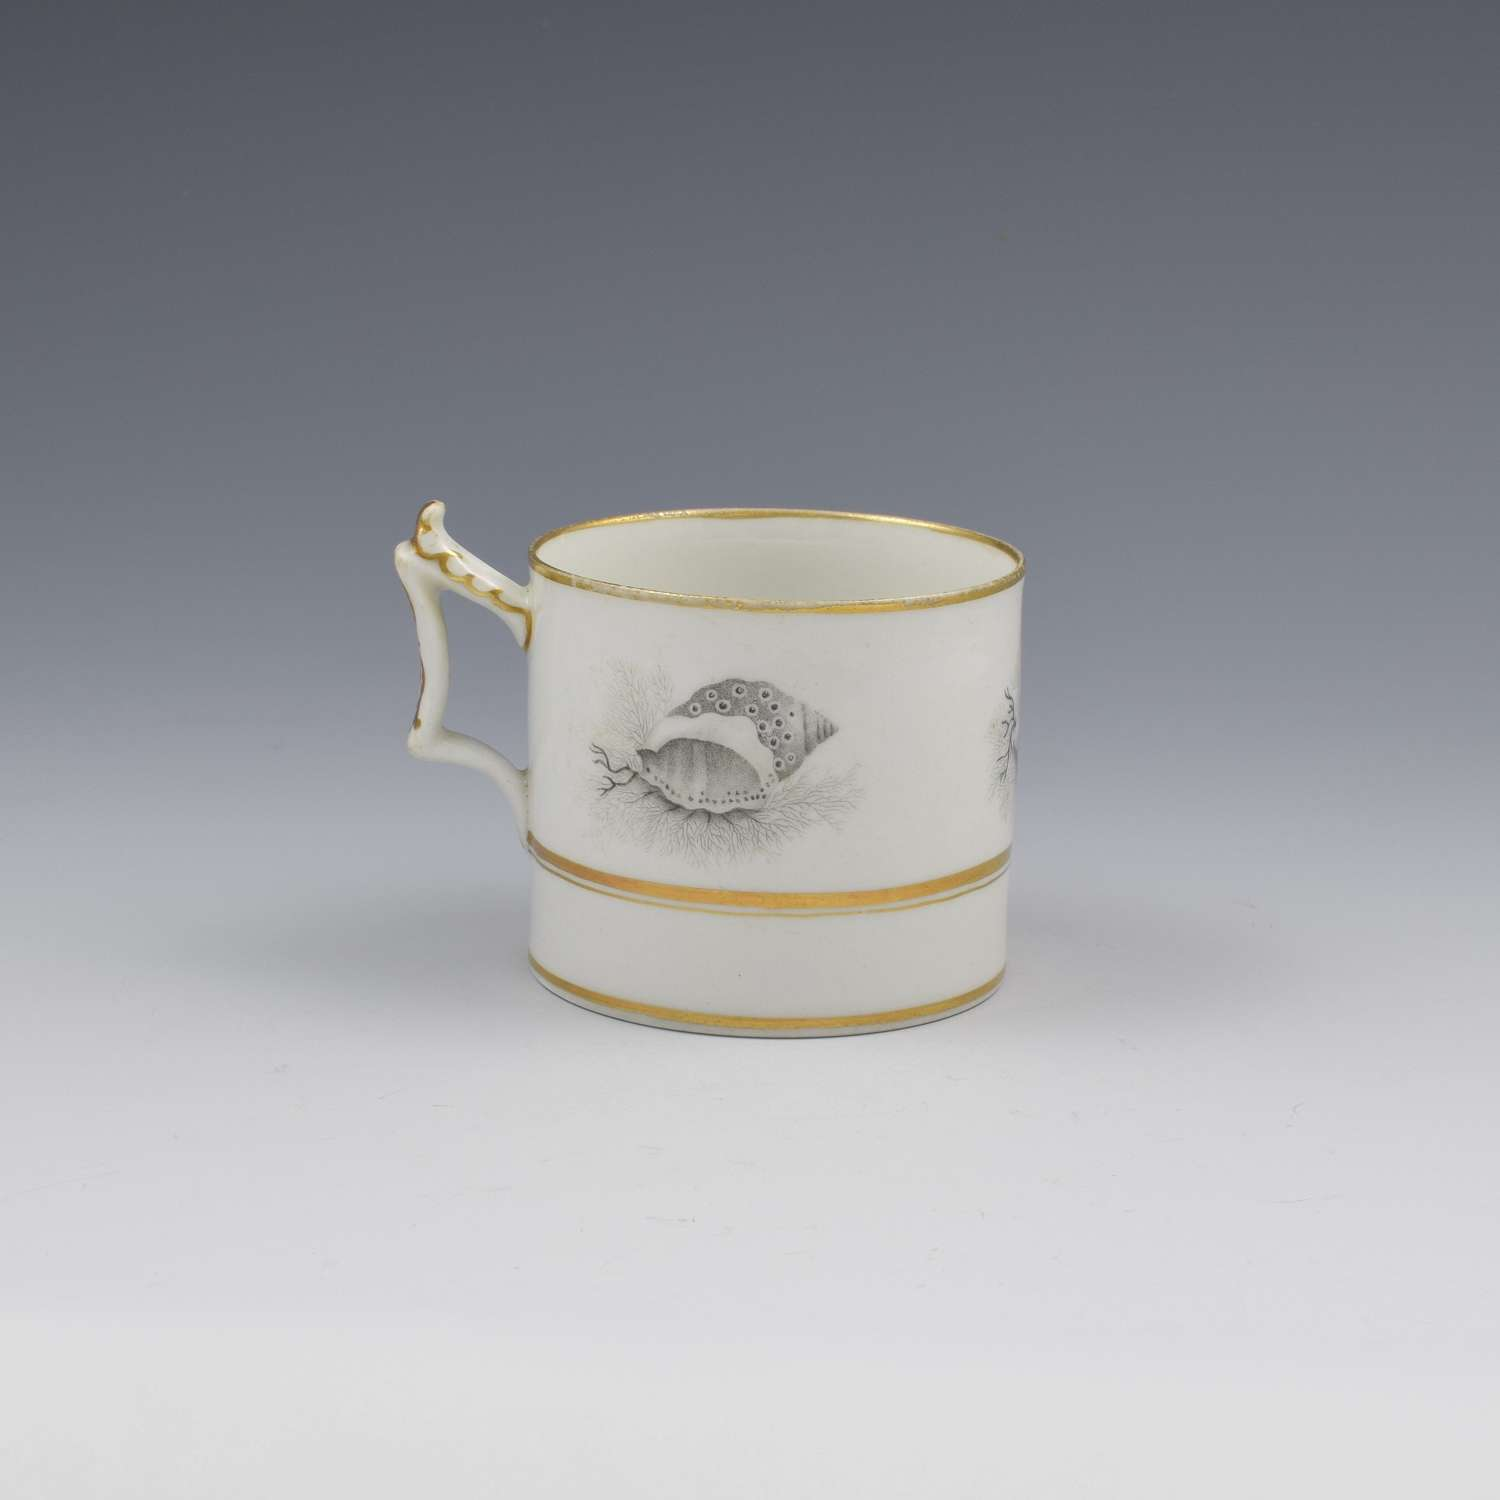 Flight, Barr & Barr Worcester Porcelain Seashell Printed Coffee Can